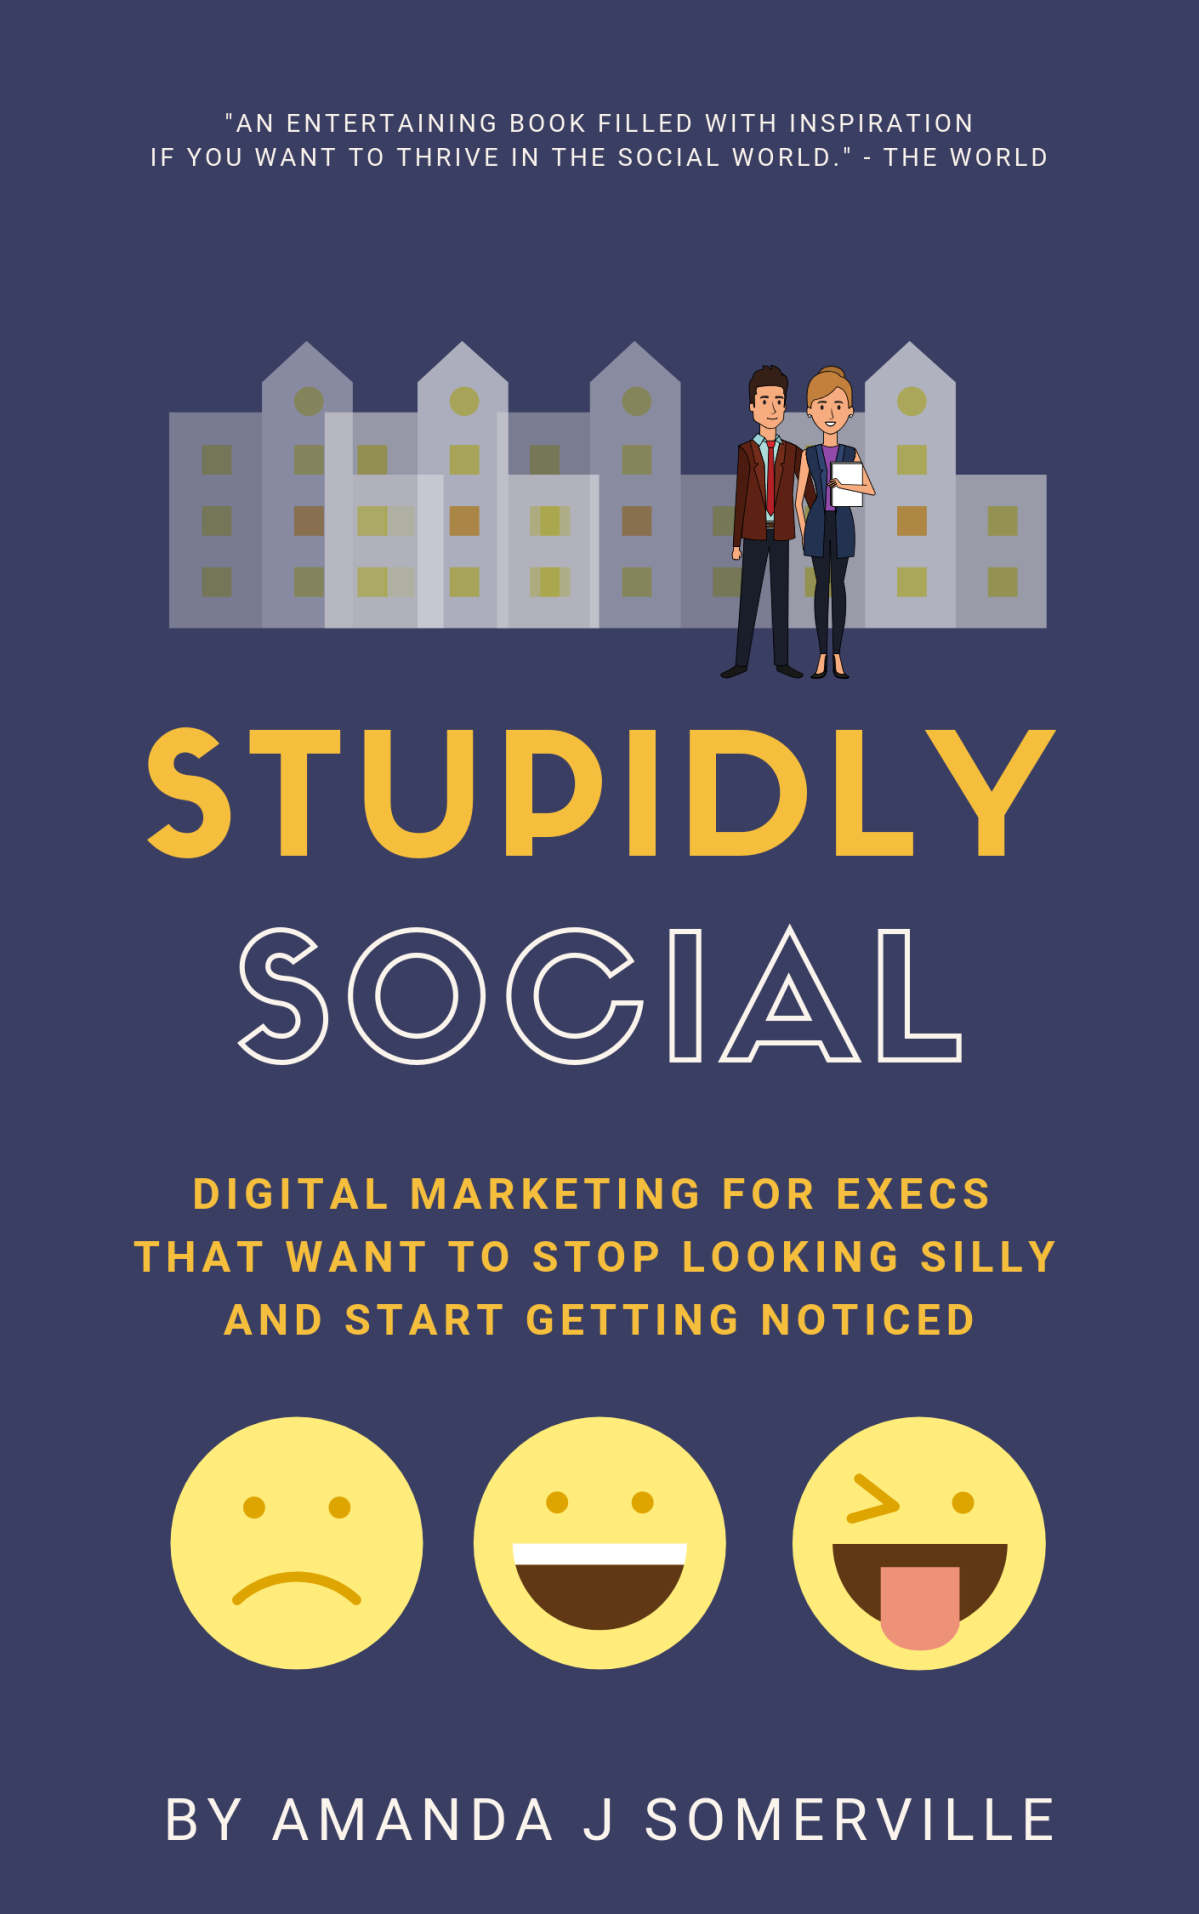 Are You Stupidly Social?